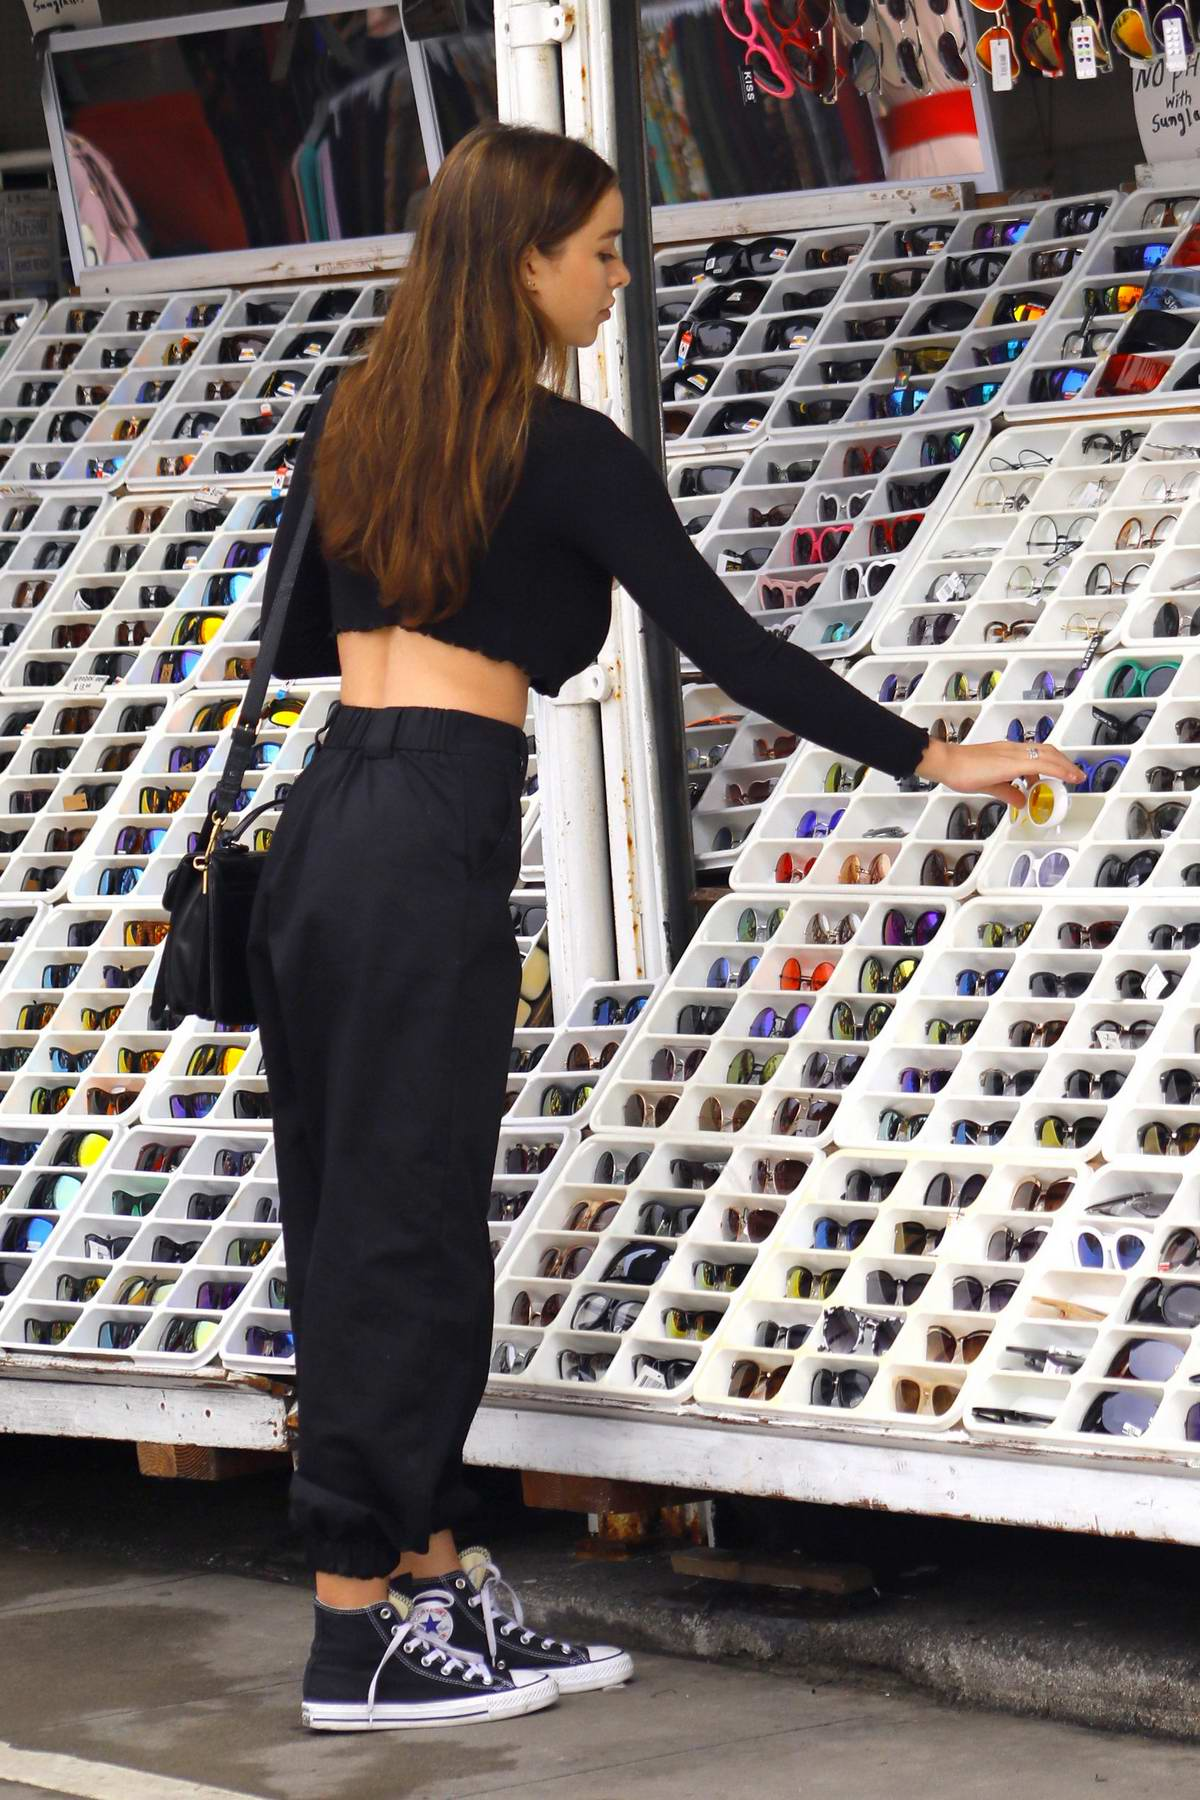 Sophie Mudd Out Shopping In Venice Beach